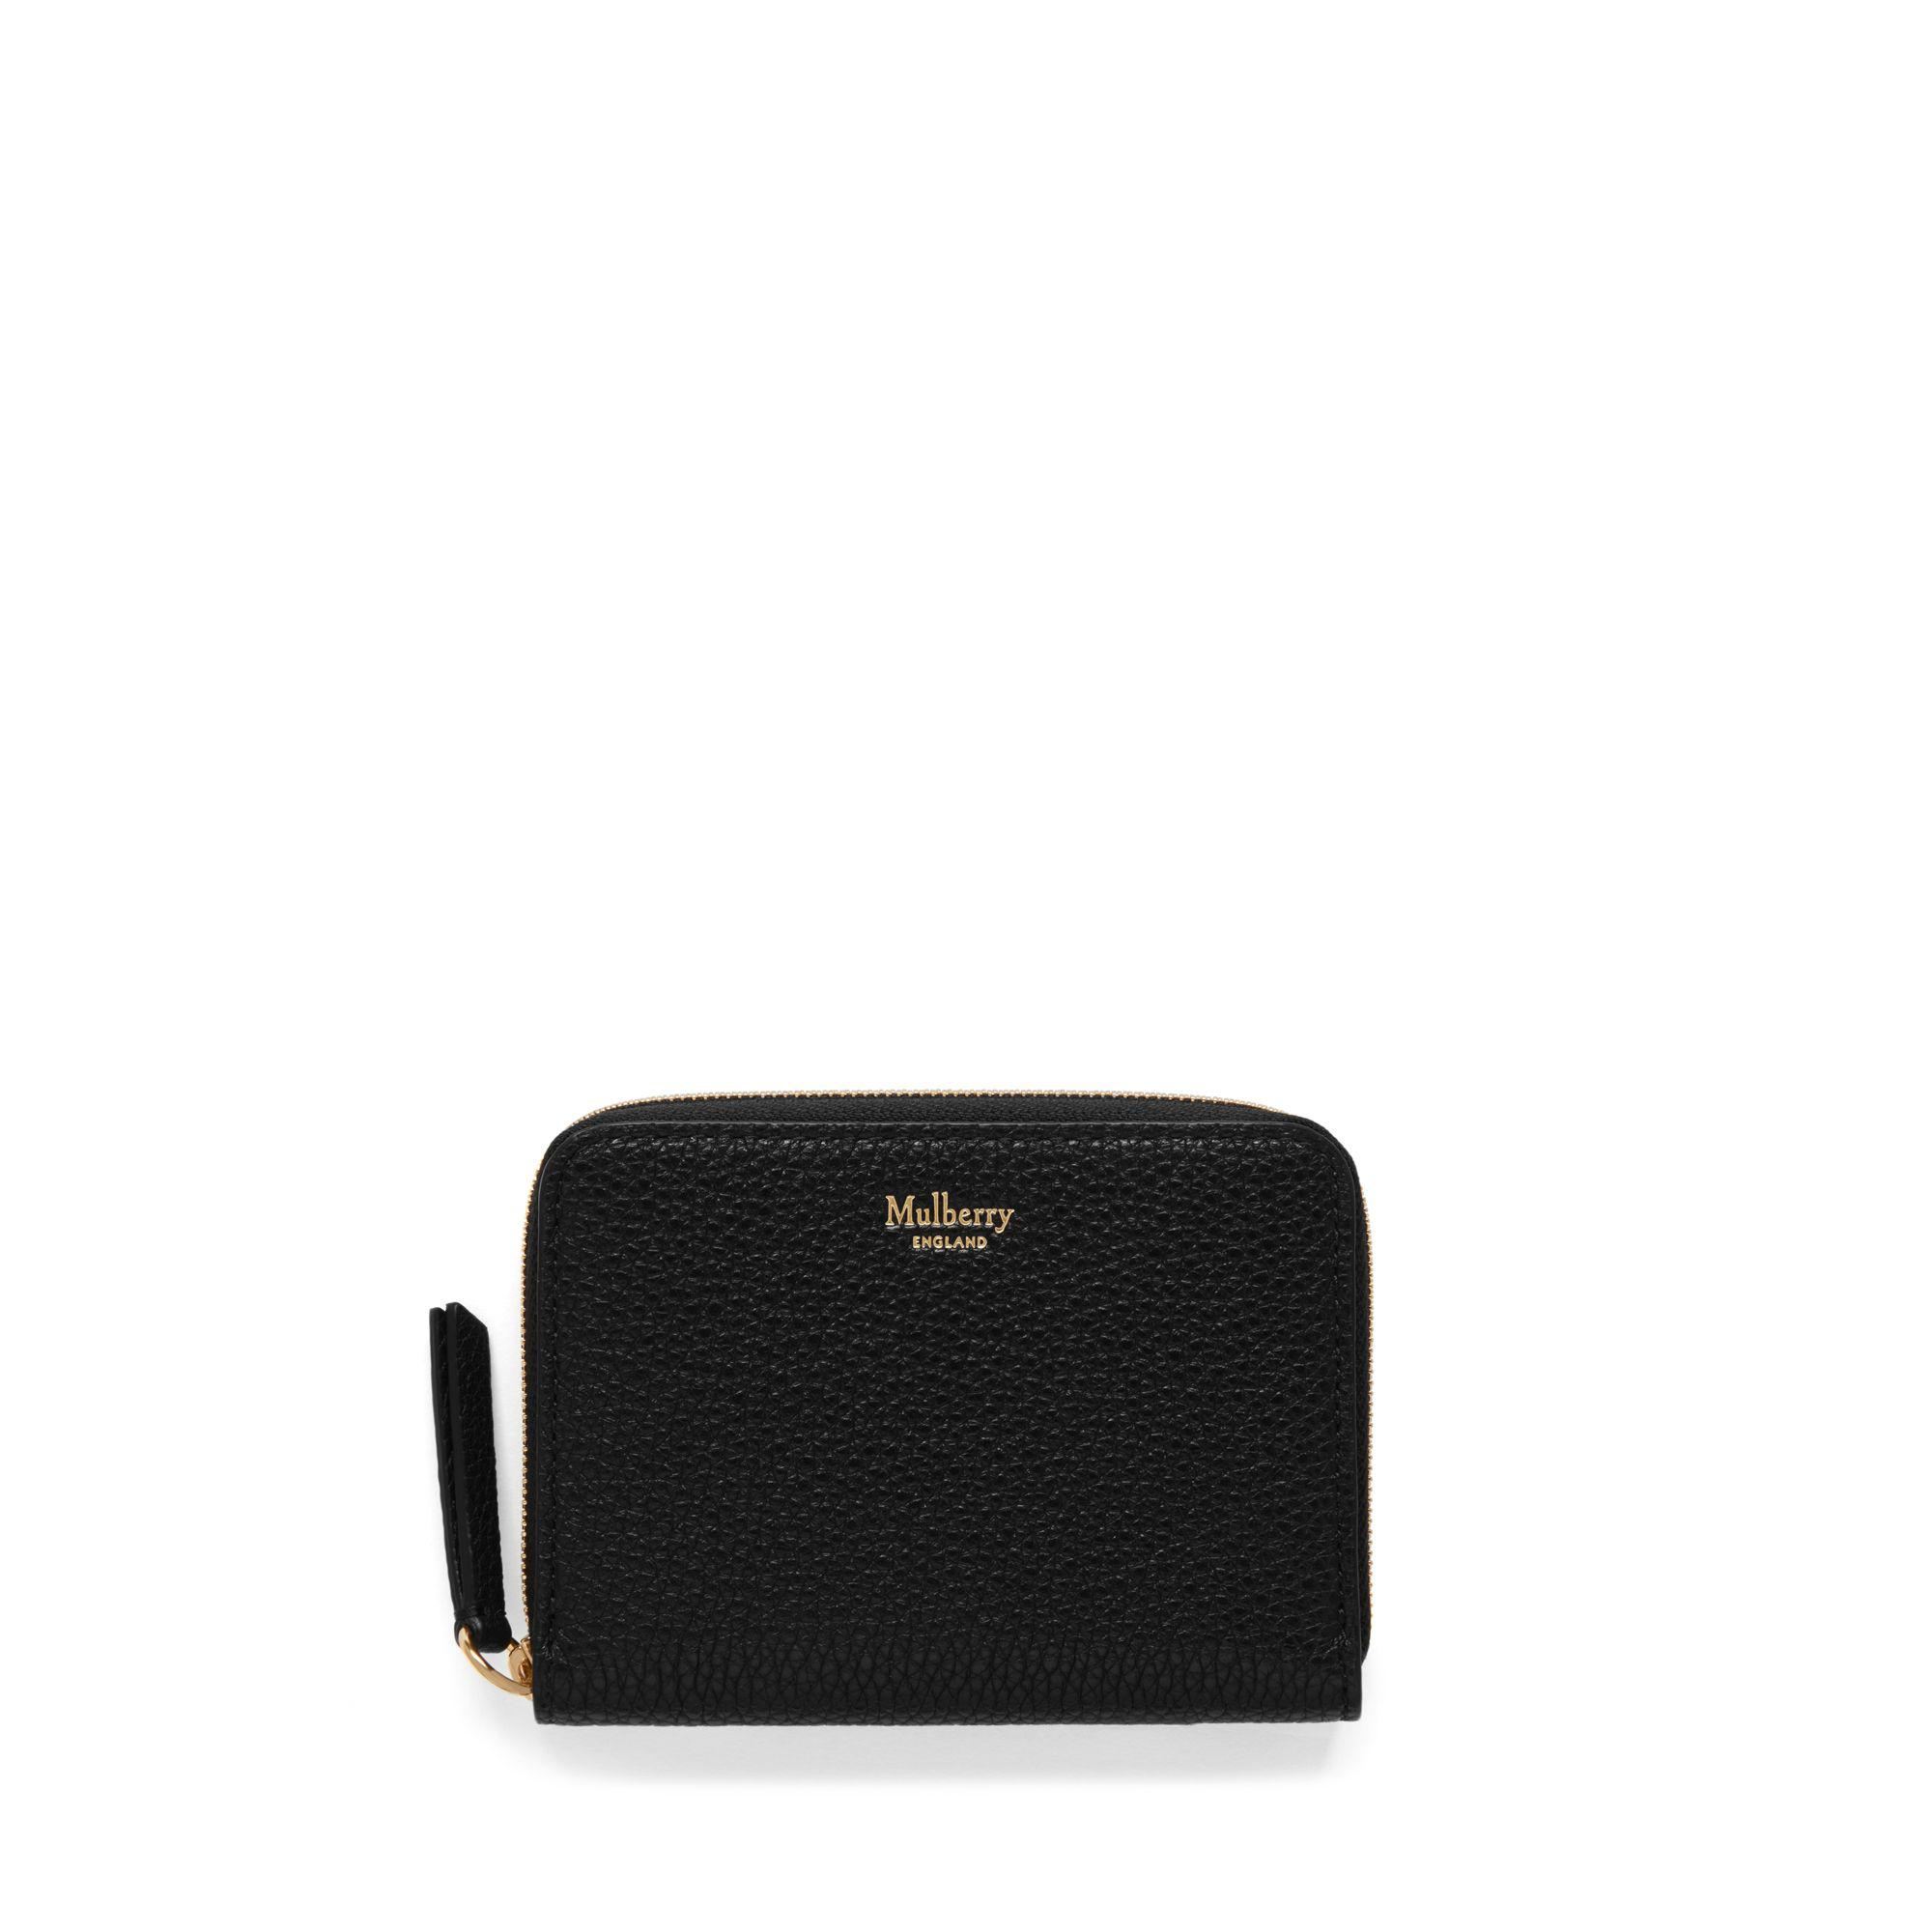 972f01a1ef Mulberry - Small Zip Around Purse In Black Small Classic Grain - Lyst. View  fullscreen